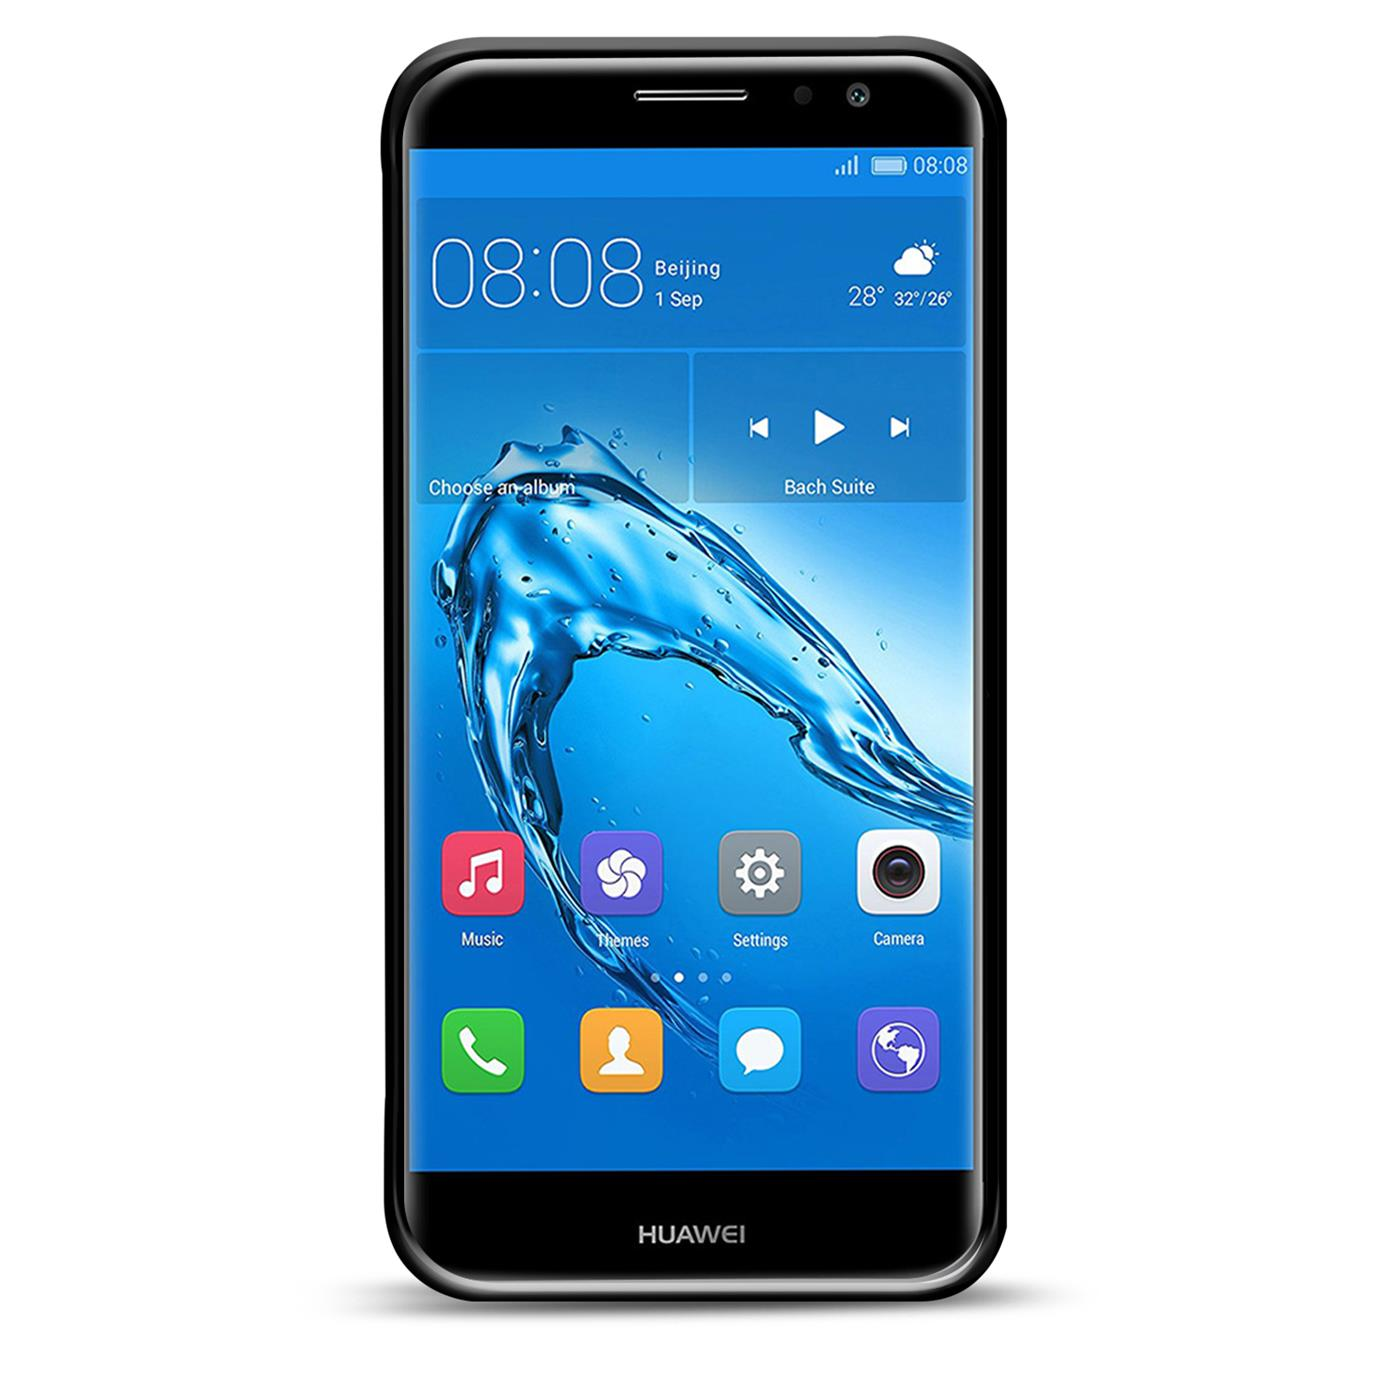 Huawei-Mate-8-Silikon-Gel-S-Line-Case-Cover-Ultra-Thin-Slim-Back-Bumper Indexbild 21